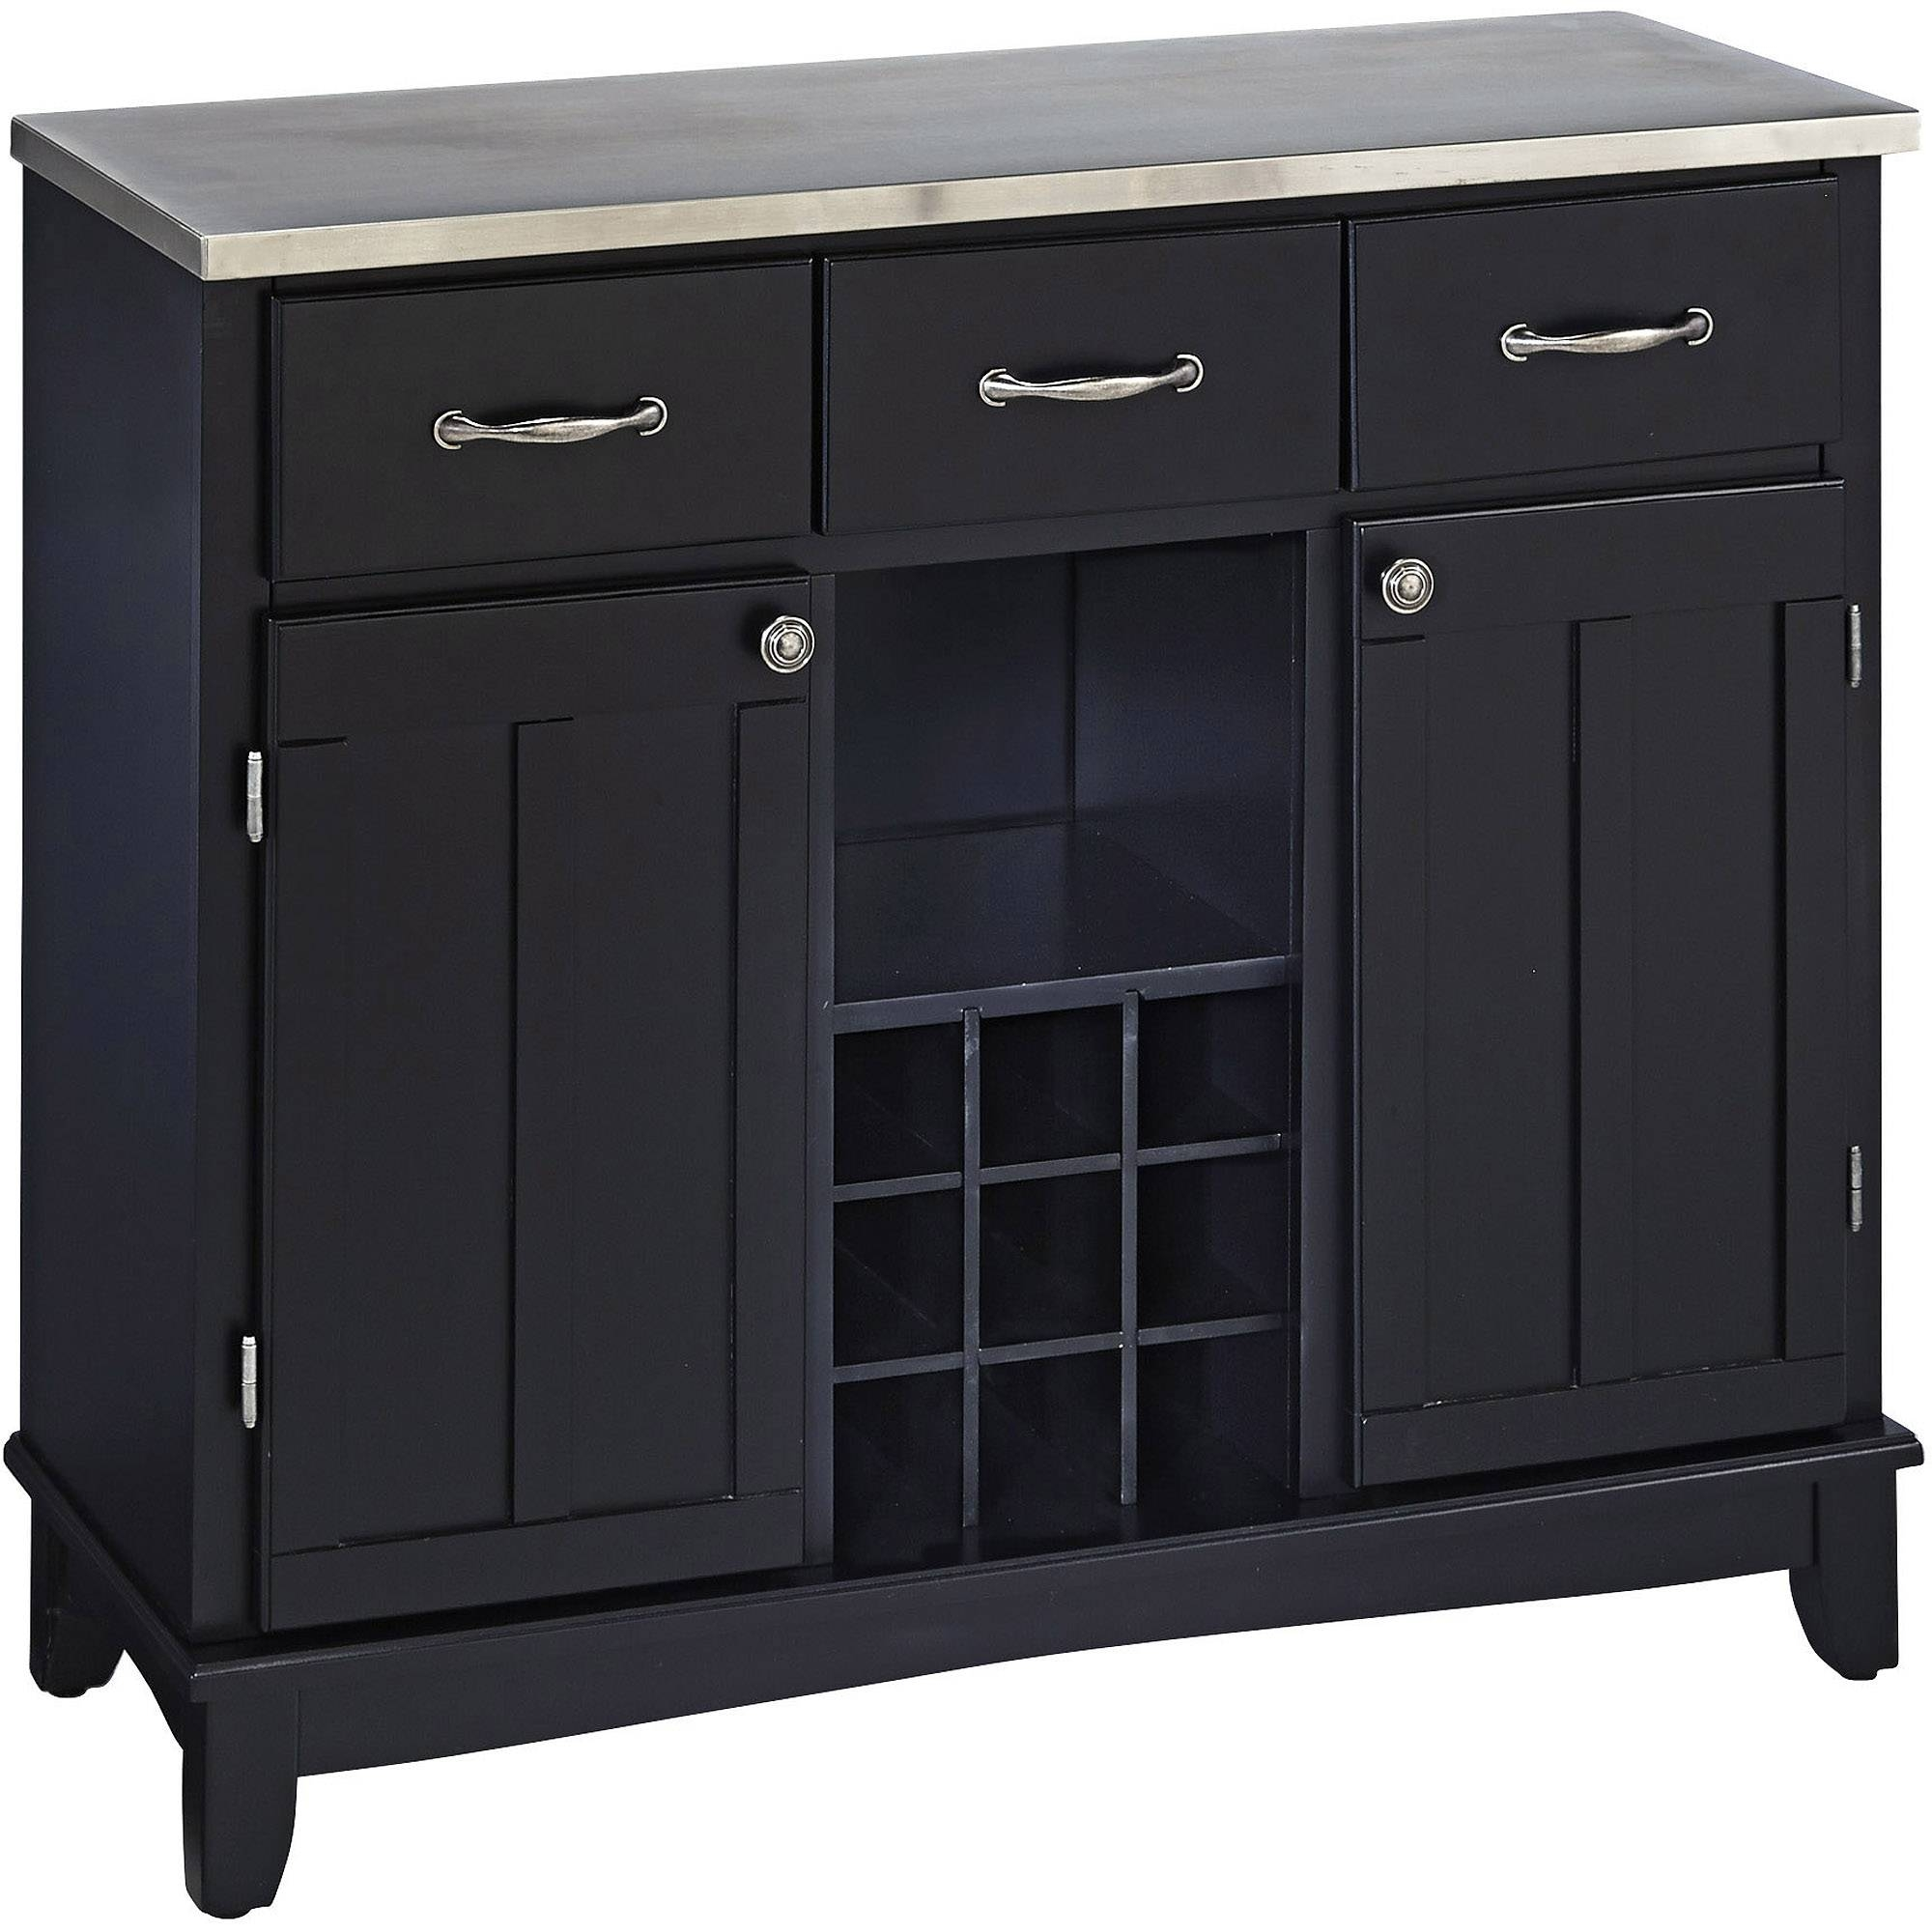 China Cabinet & Buffet Furniture : Kitchen & Dining Furniture Pertaining To Black Sideboard Buffet (#2 of 20)